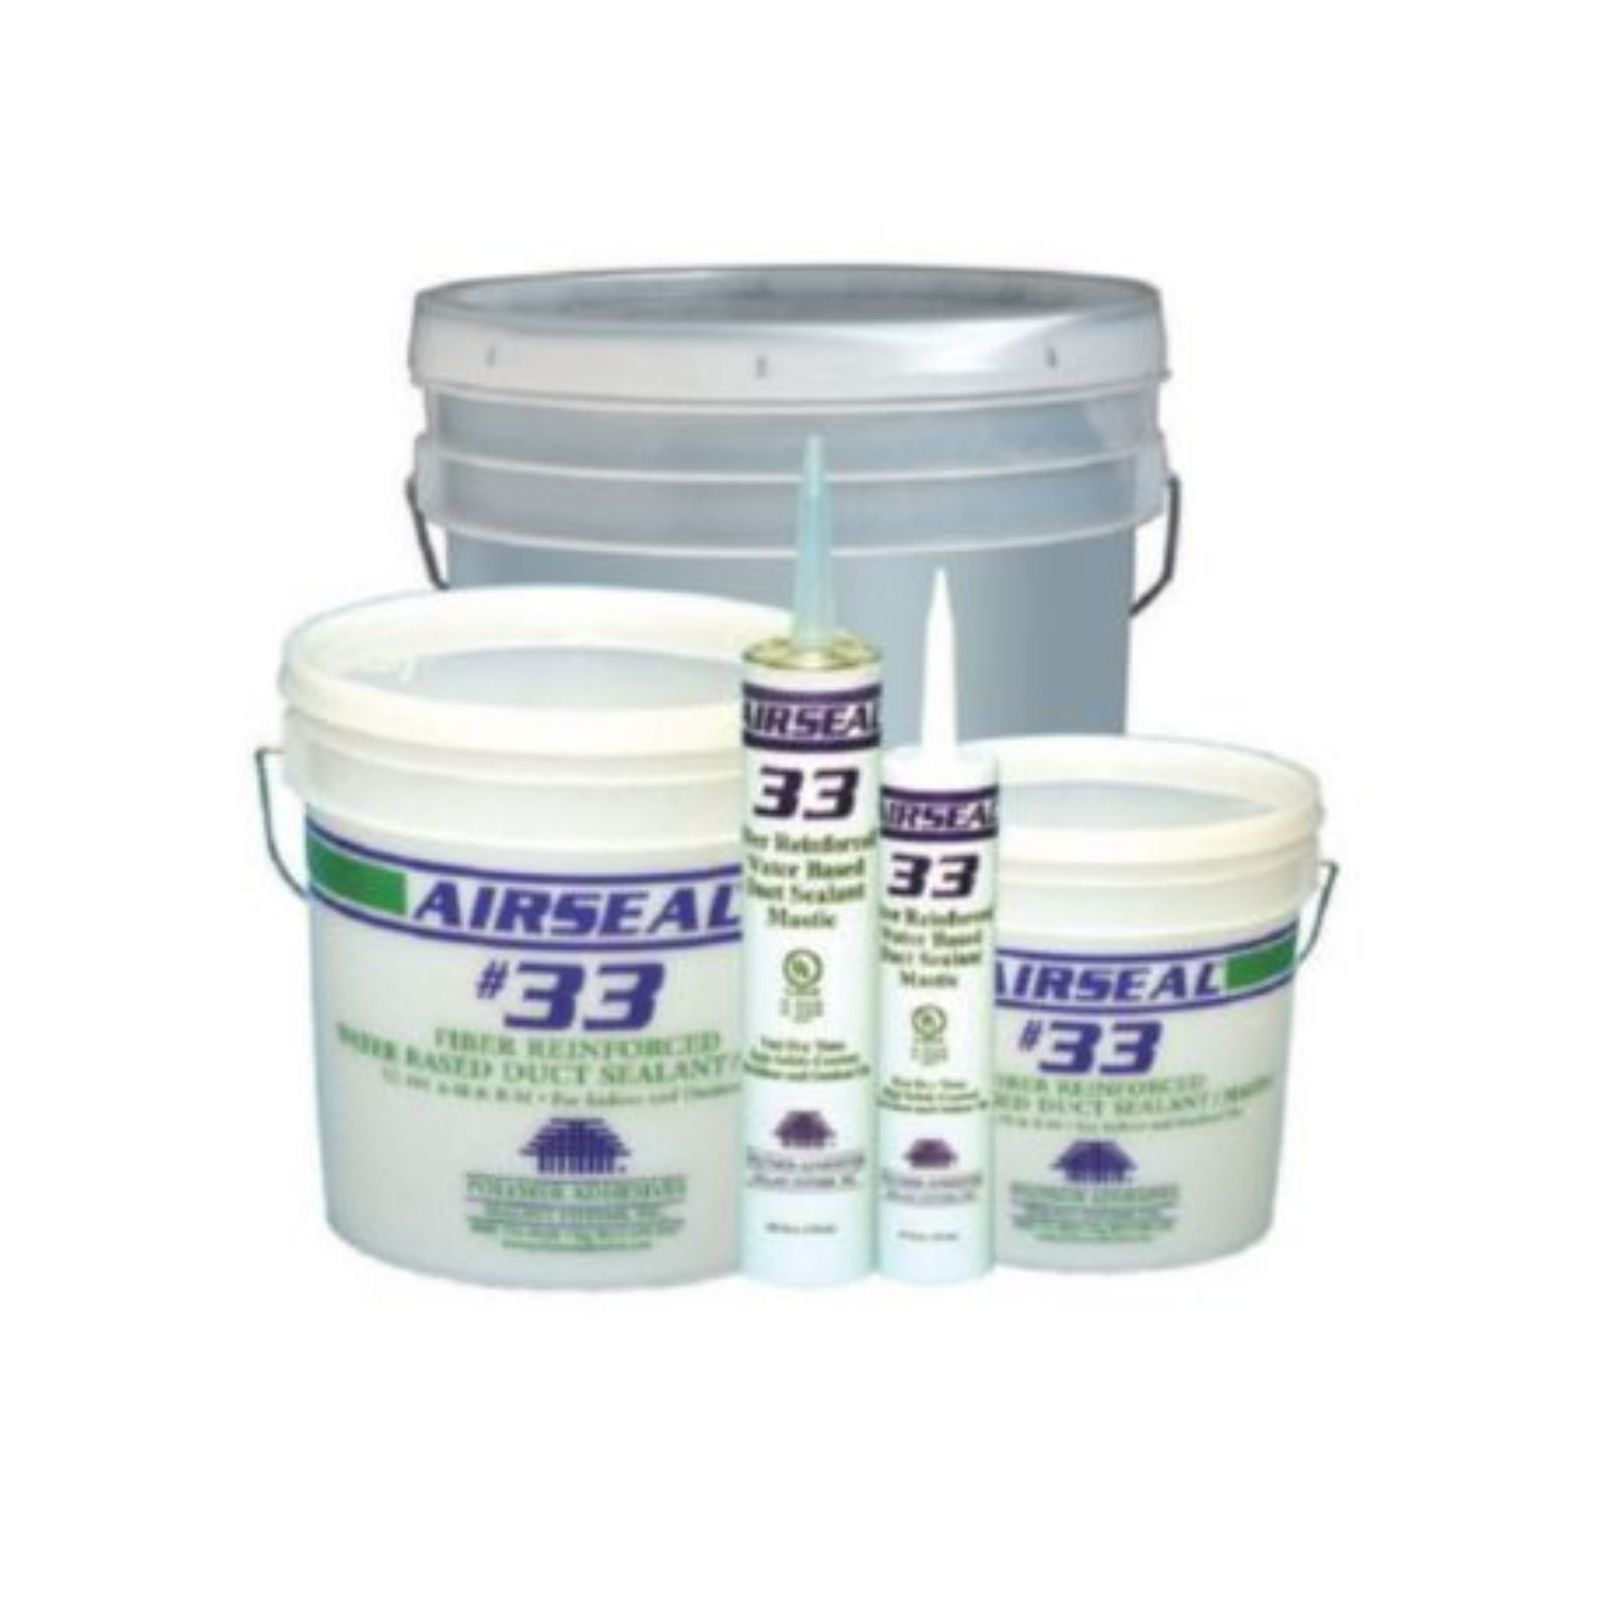 Polymer Adhesives AS33-1(G) - Airseal  - #33-1 Grey, Fiber Reinforced Water Based Duct Sealant